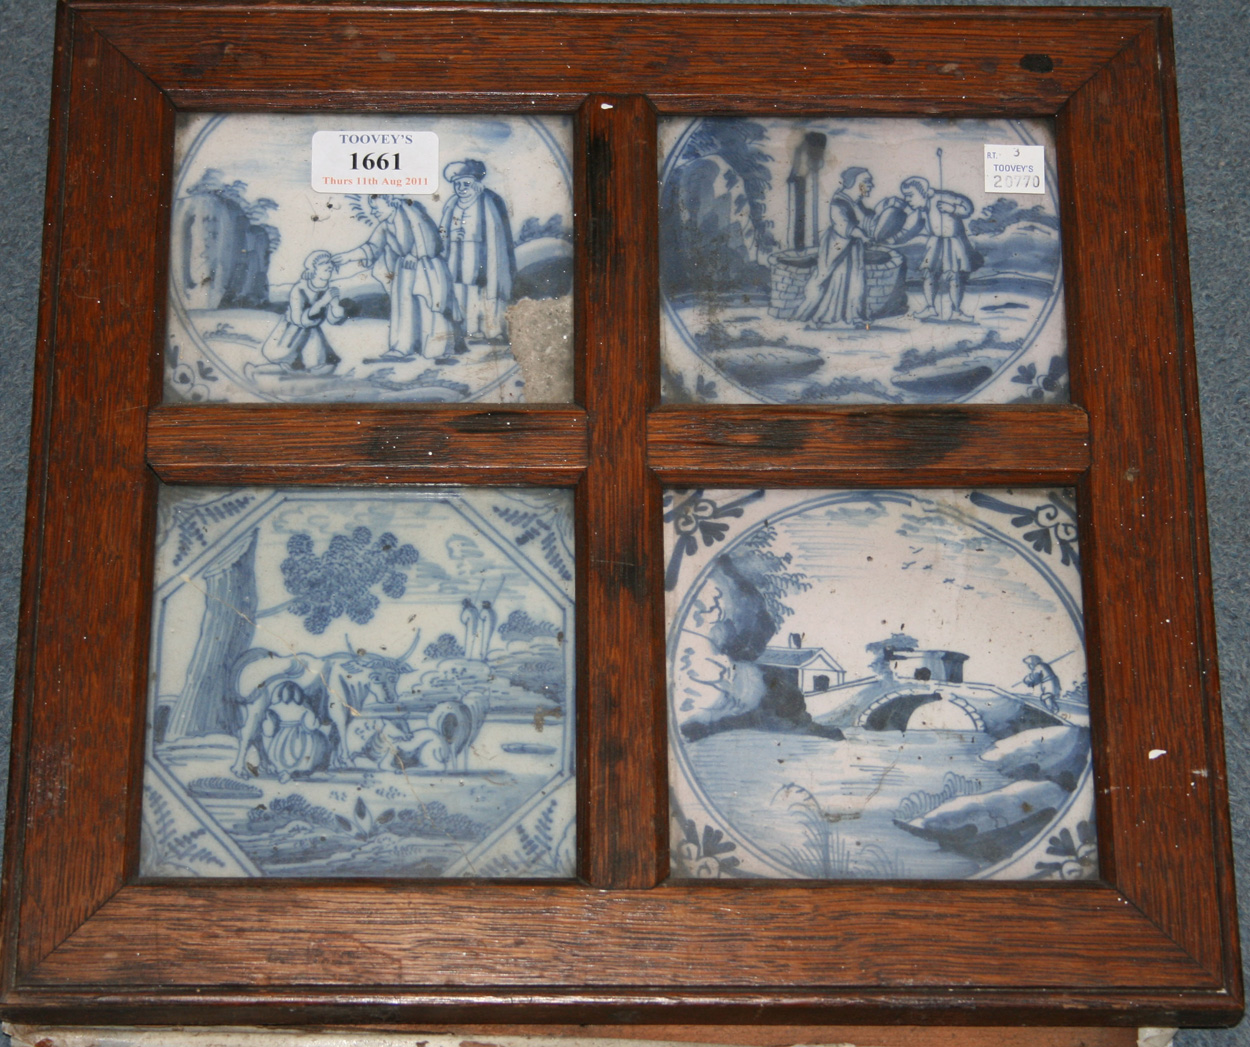 Four Dutch delft blue and white tiles, mid-18th Century